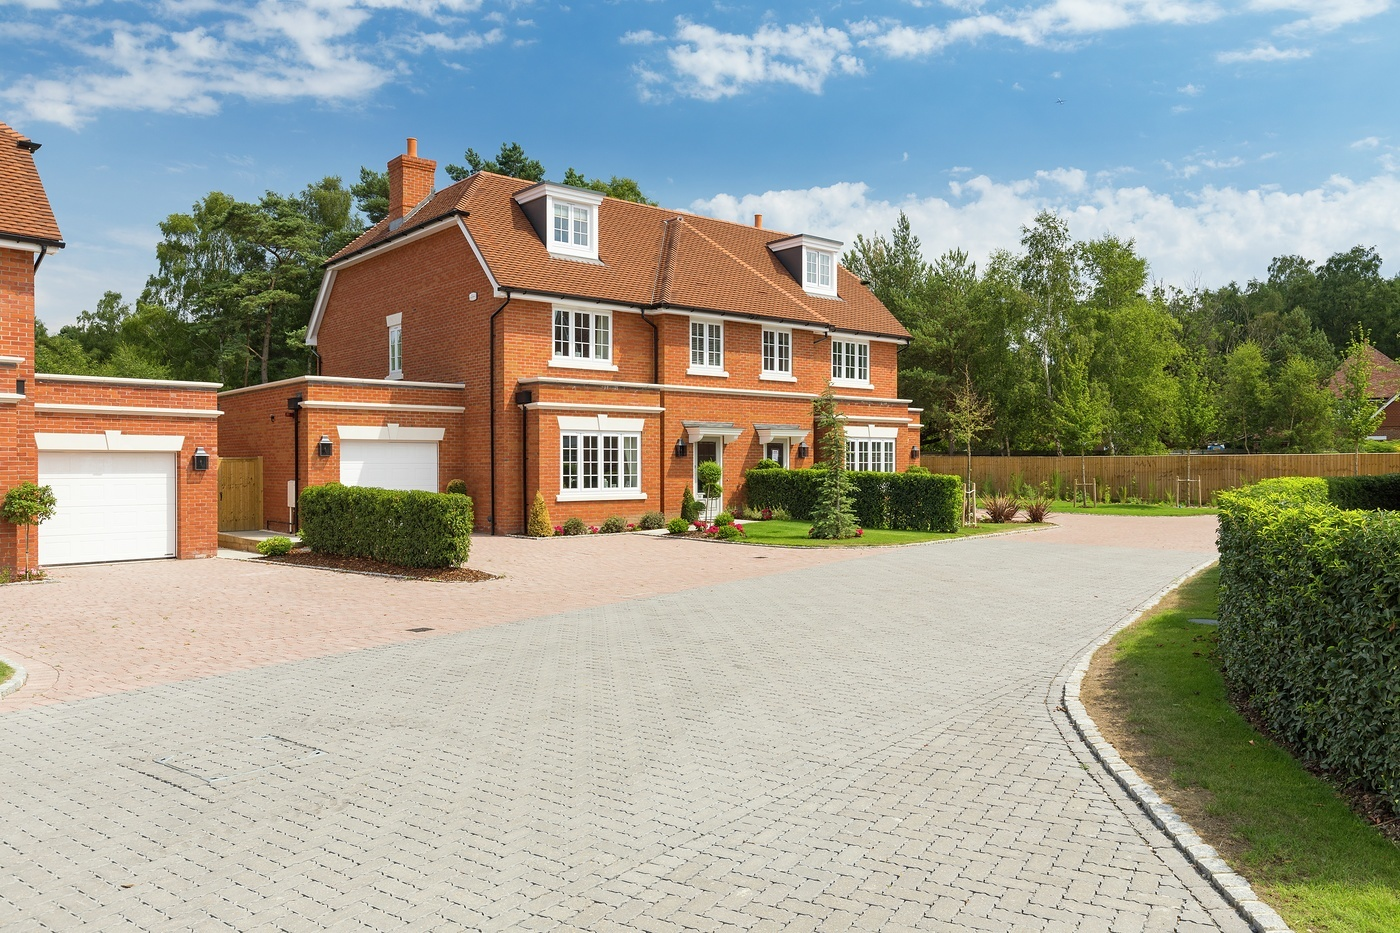 millgate-homes-ascot-our-work-developers-ascot-design-view4.jpg